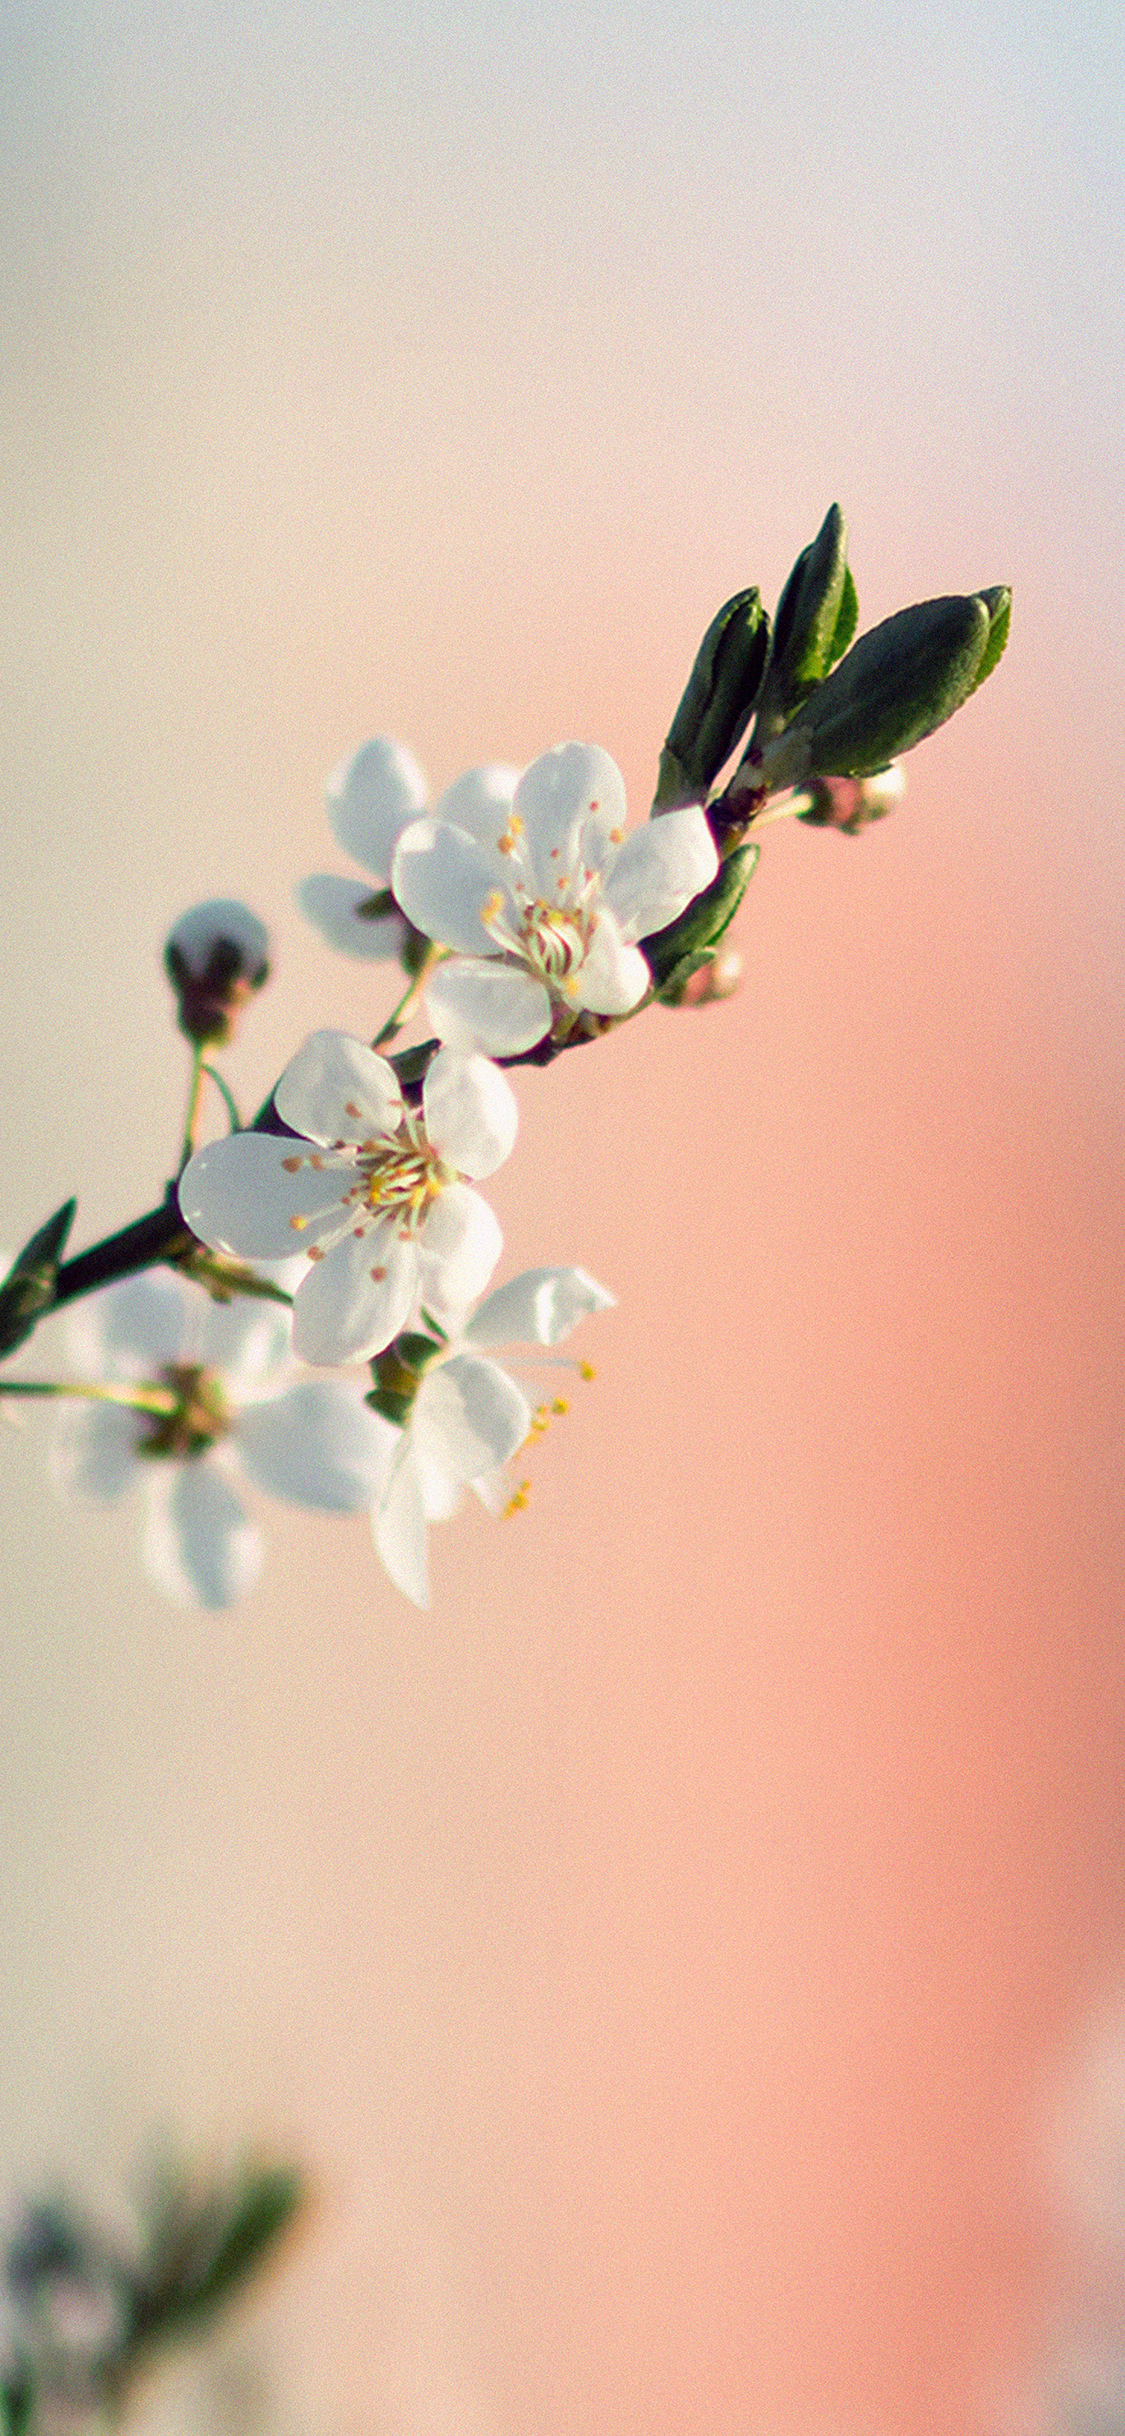 iPhoneXpapers.com-Apple-iPhone-wallpaper-me41-spring-flower-white-delight